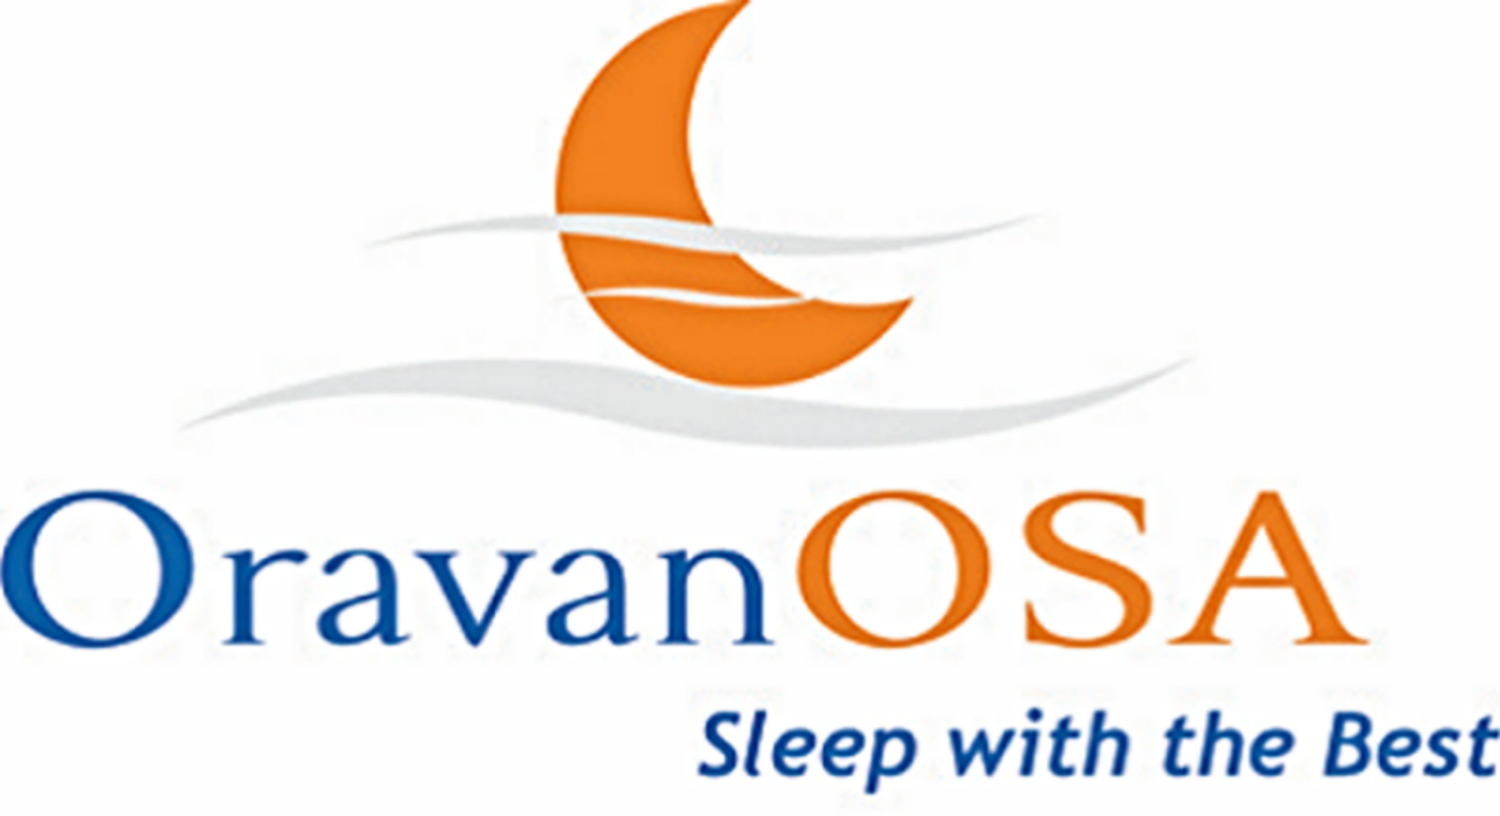 OravanOSA | Sleep with the Best